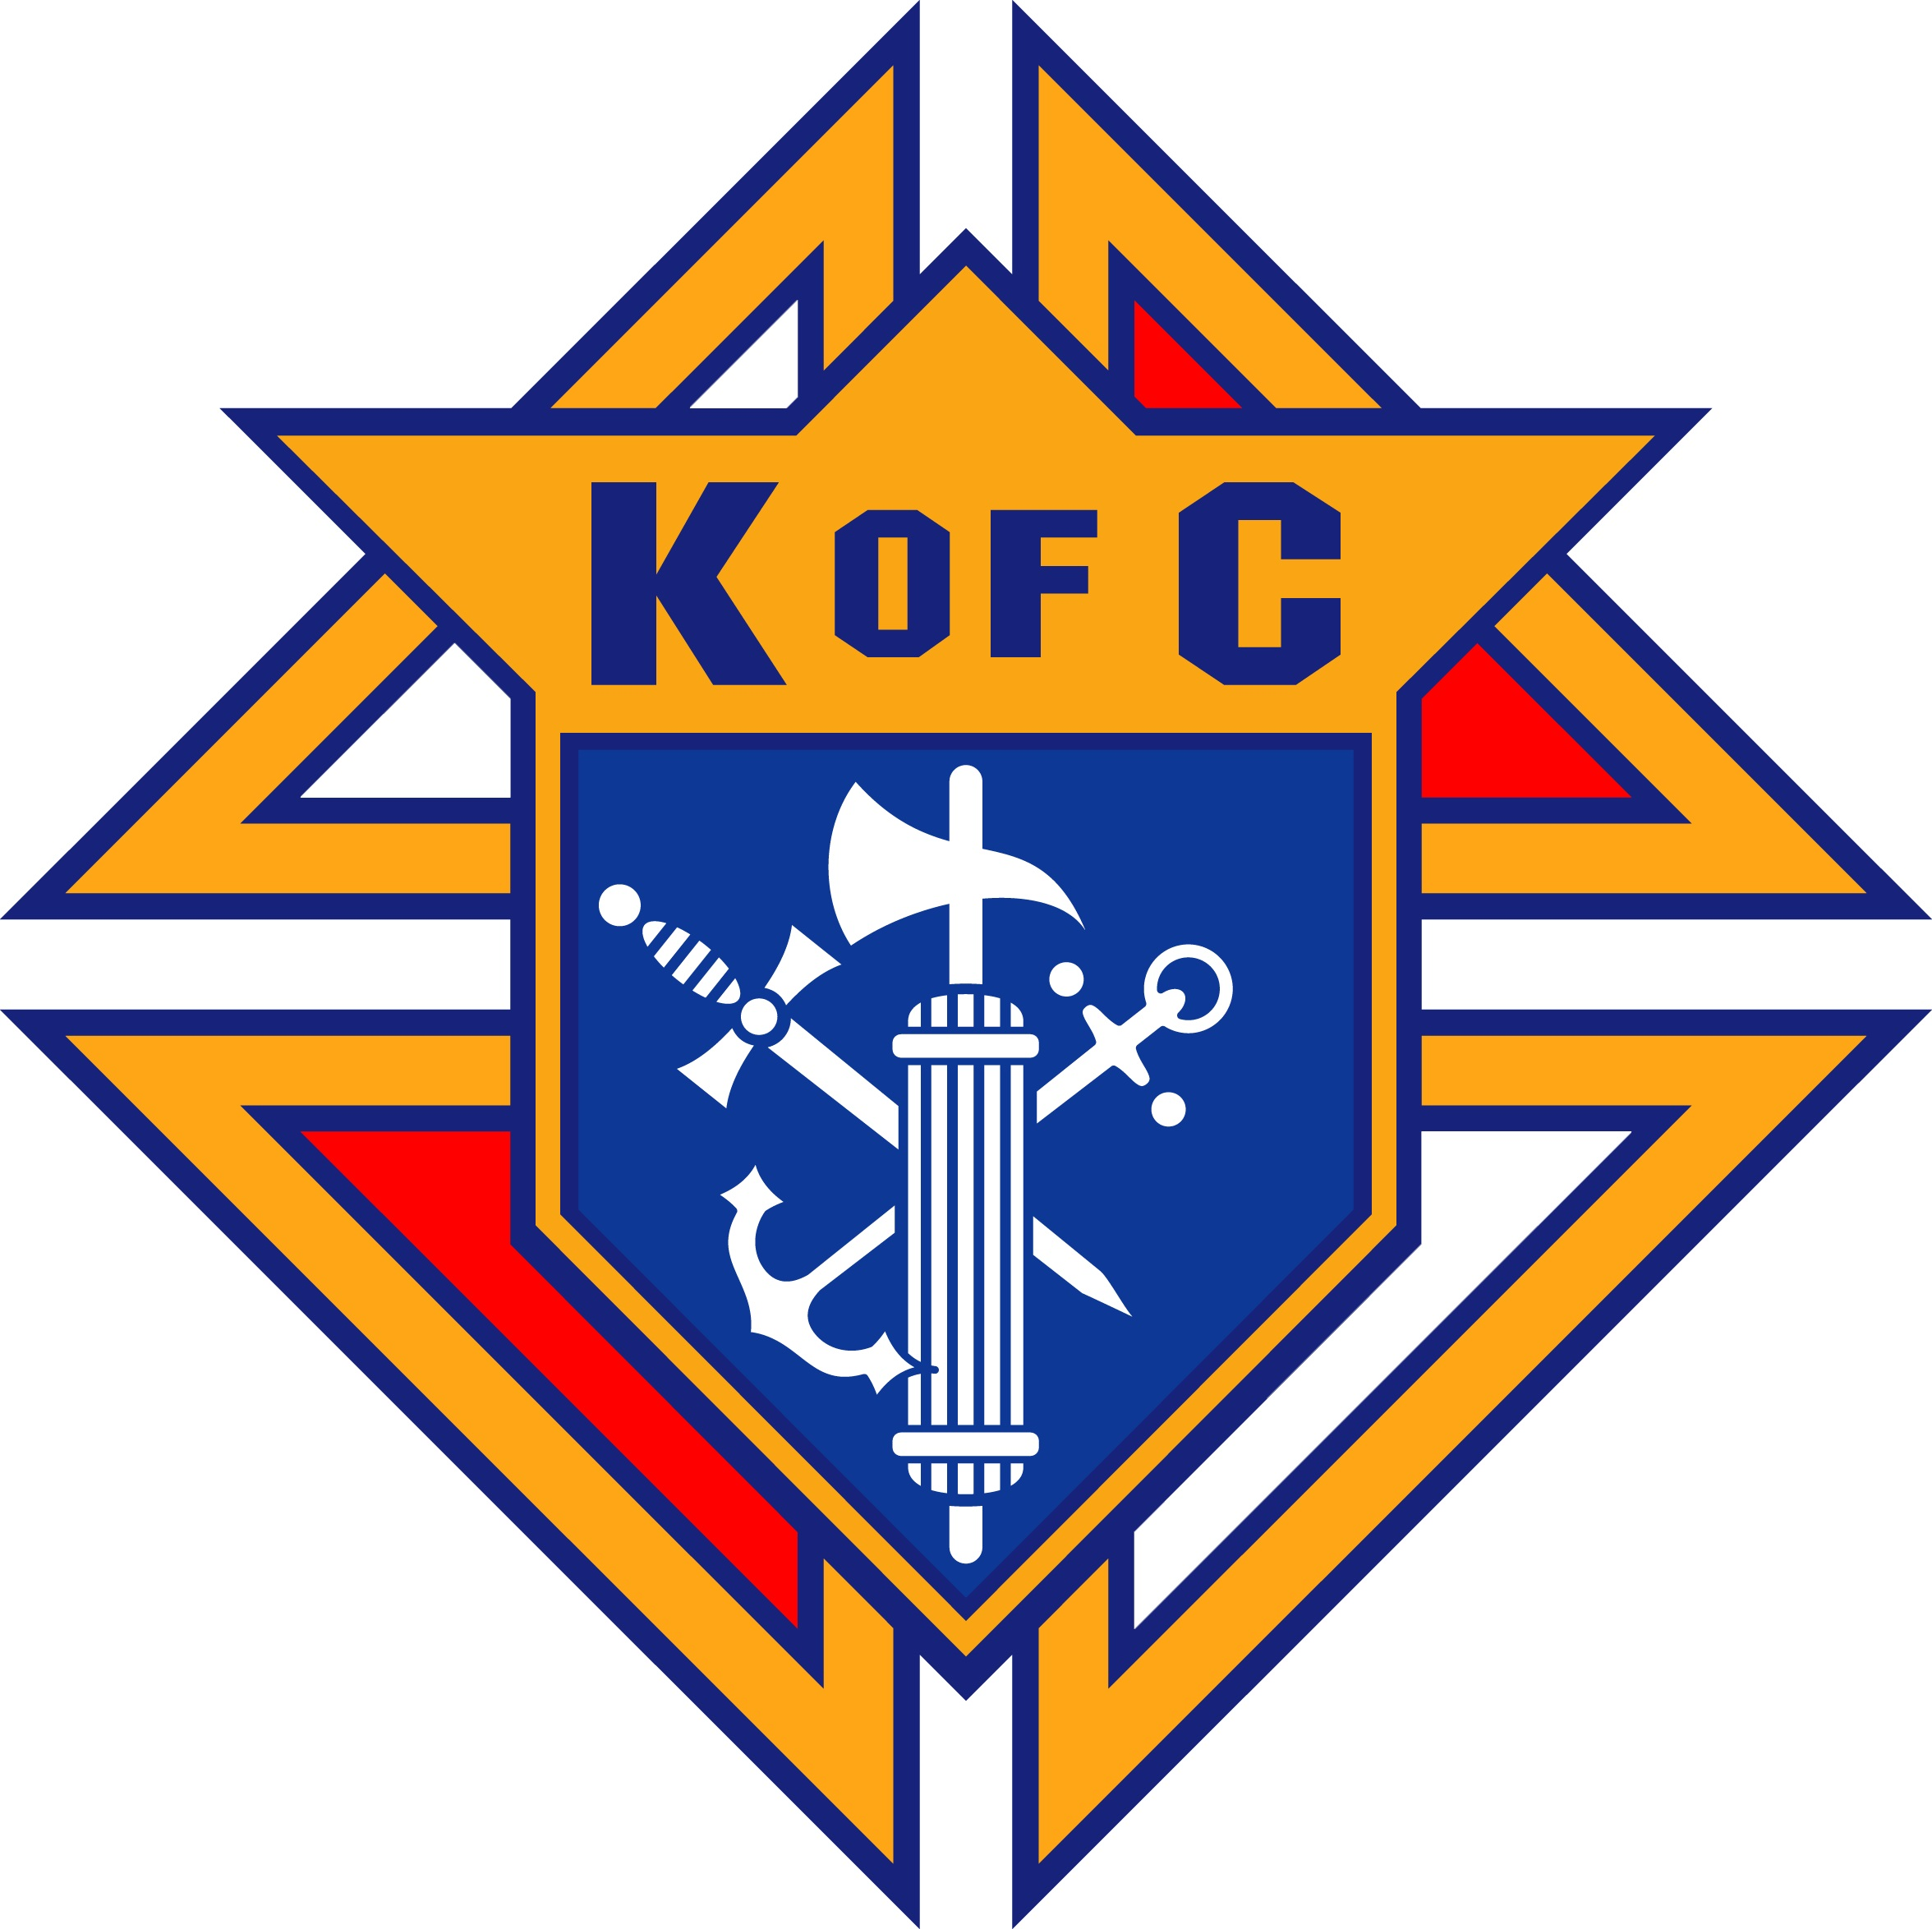 Catholic Knights Of Columbus Logo